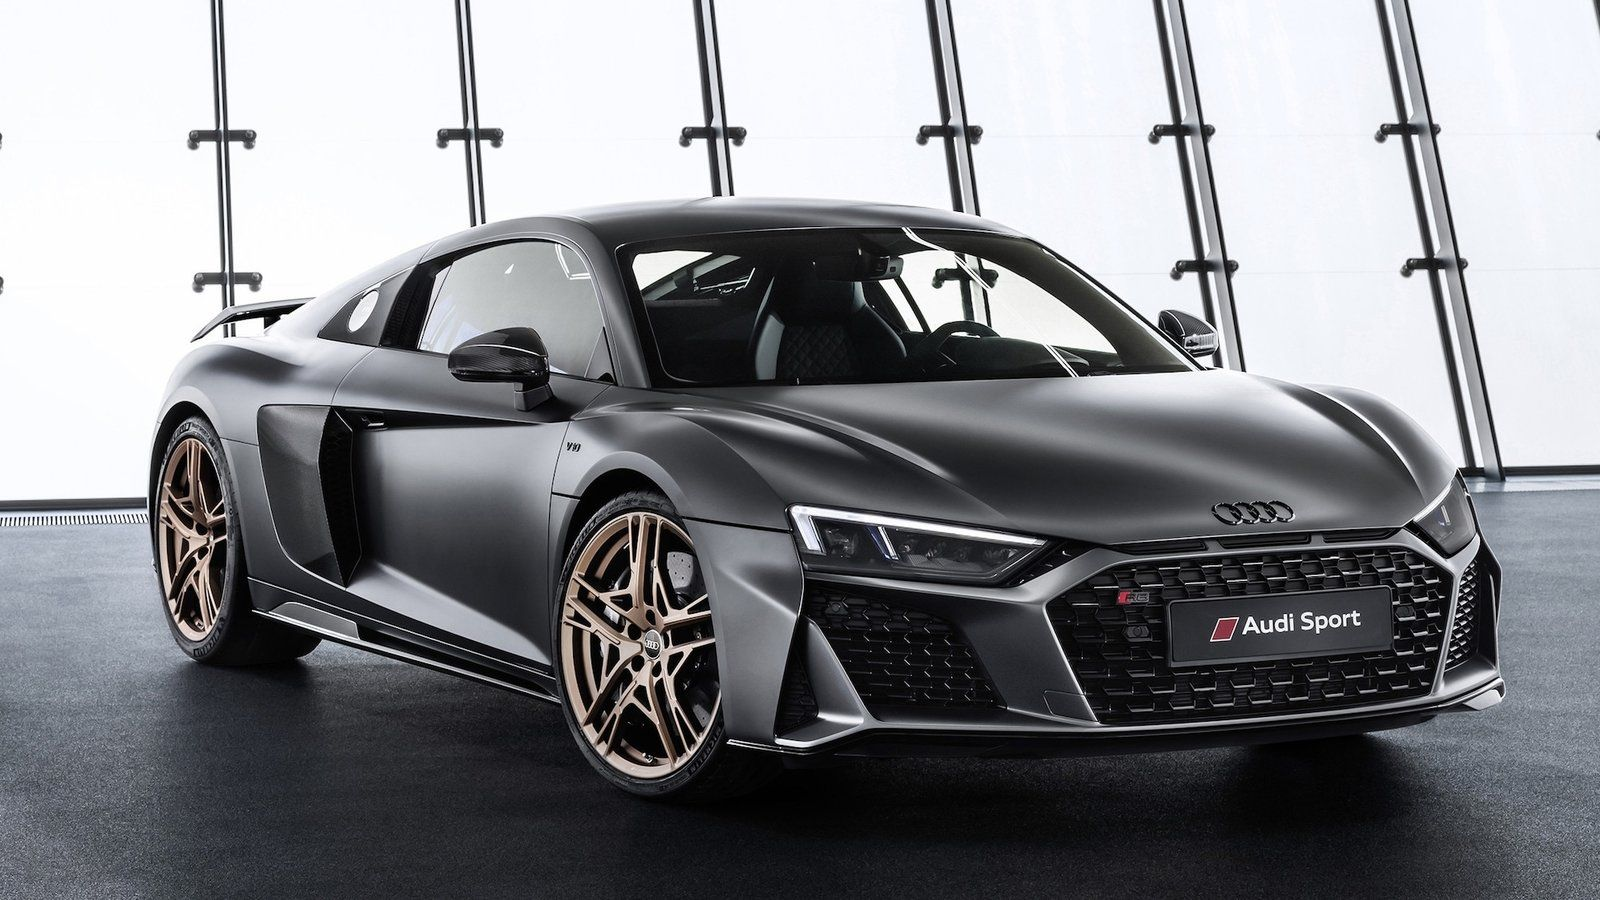 Special Editions Reviews Specs Prices Photos And Videos Top Speed Audi R8 Spyder Audi R8 V10 Plus Audi R8 V10